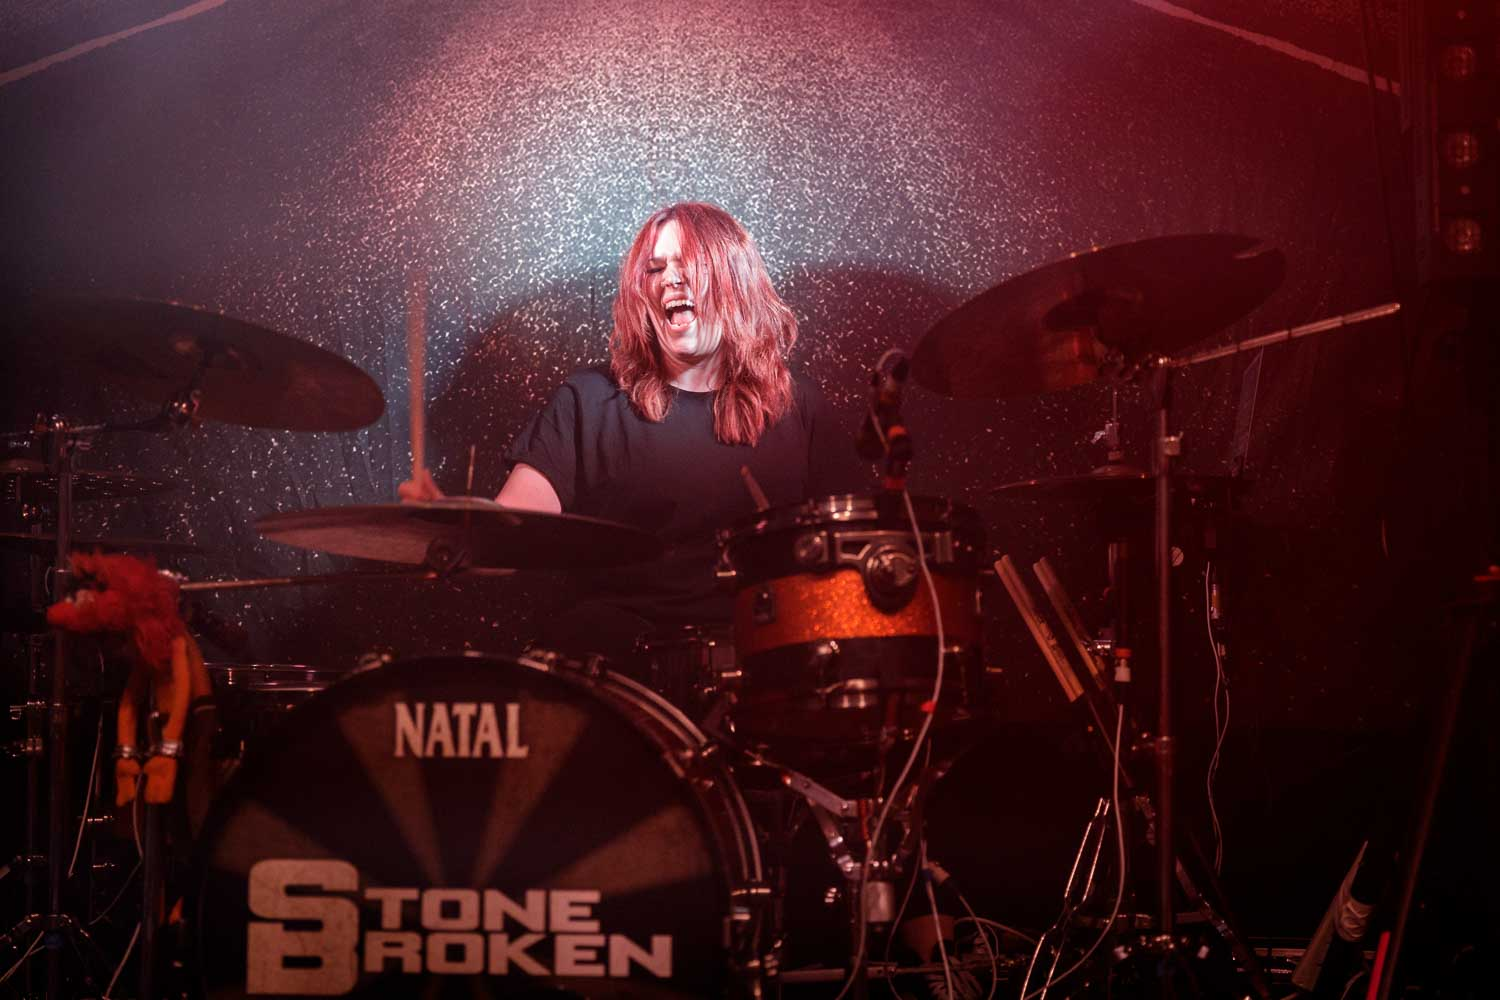 Stone Broken at the Arts Club in Liverpool on February 20th 2019.